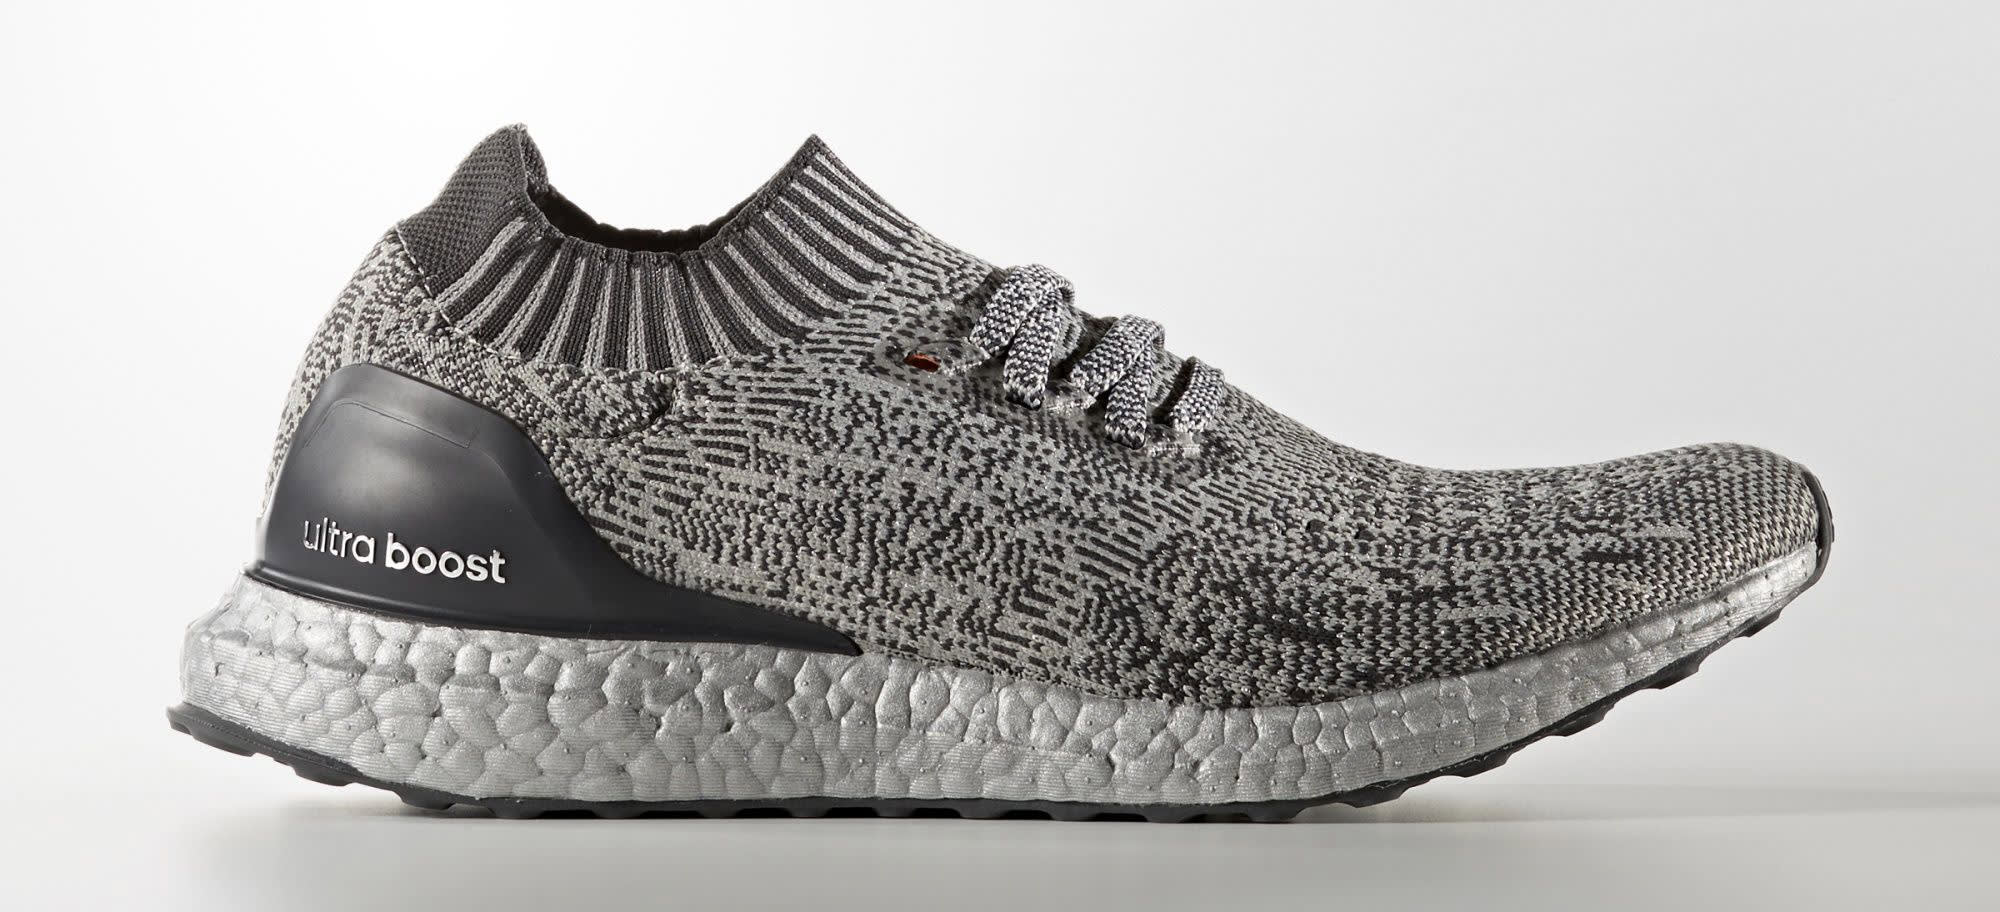 Adidas Ultra Boost Silver Pack | Sole